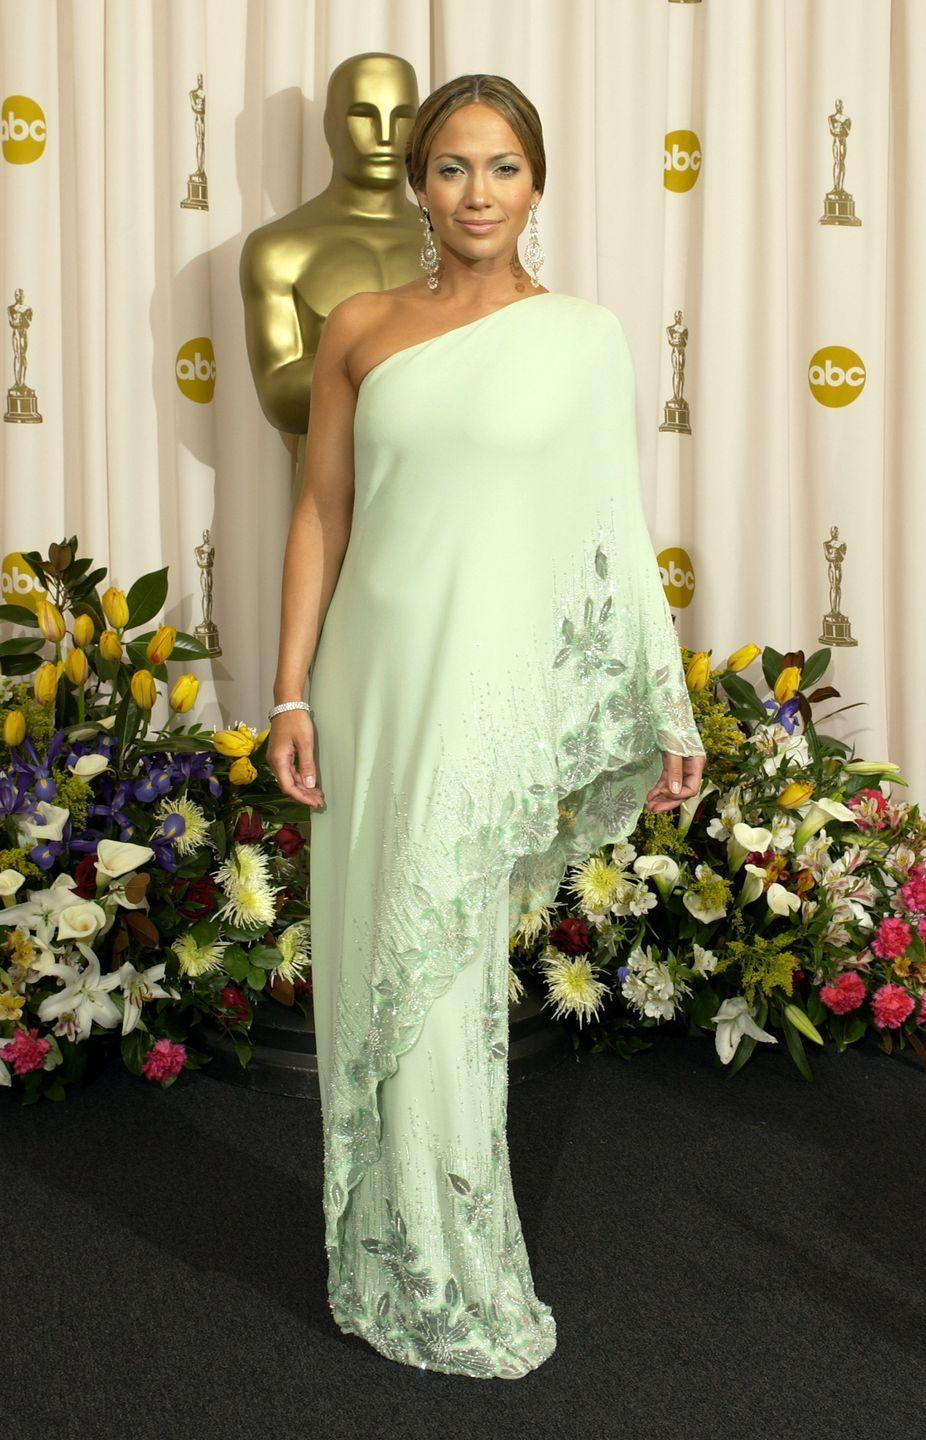 <p>J. Lo killed the red carpet in this mint green one-shoulder Valentino dress with beading at the hem. She attended the awards with her then boyfriend Ben Affleck. (#TBT to <em>Gigli</em>.) </p>